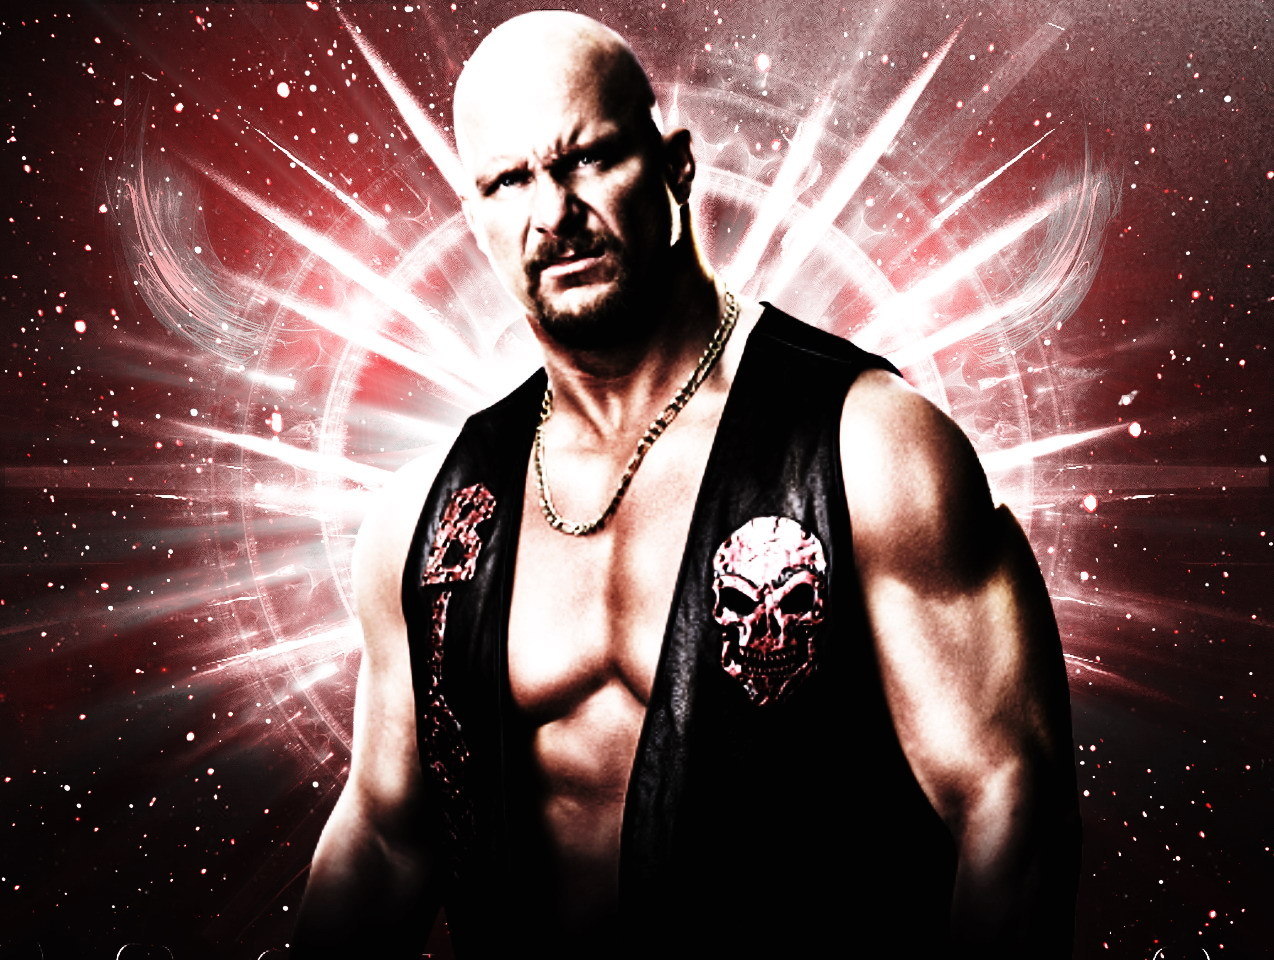 Download Top Hd Sports Wallpapers For Windows Stone Cold Steve